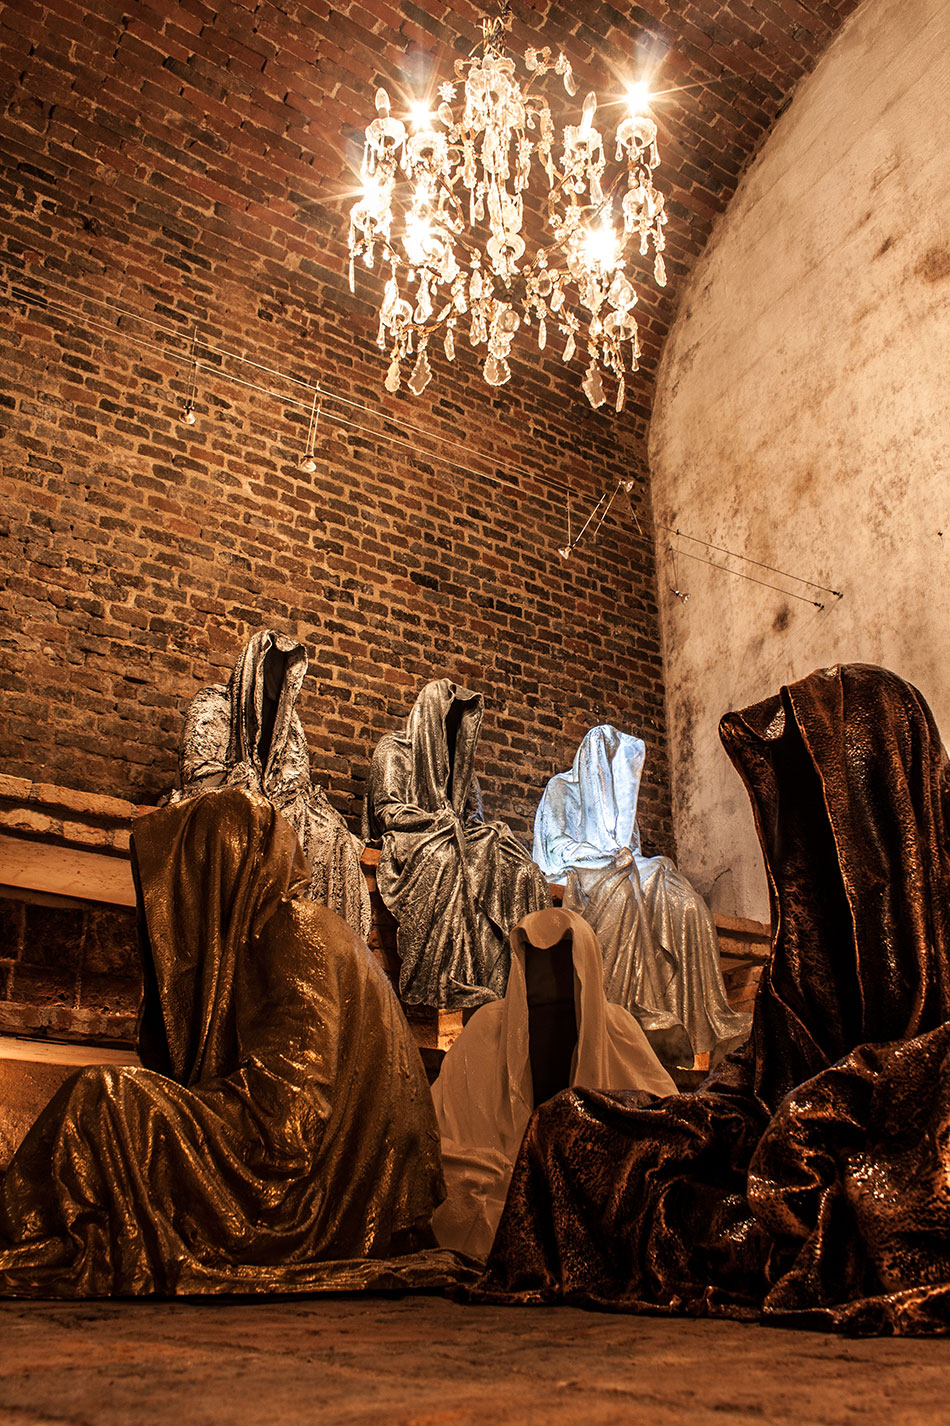 wine-cellar-galerie-artdealer--freller-guardians-of-time-manfred-kili-kielnhofer-contemporary-art-arts-light-design-sculpture-antique-show-statue-7909